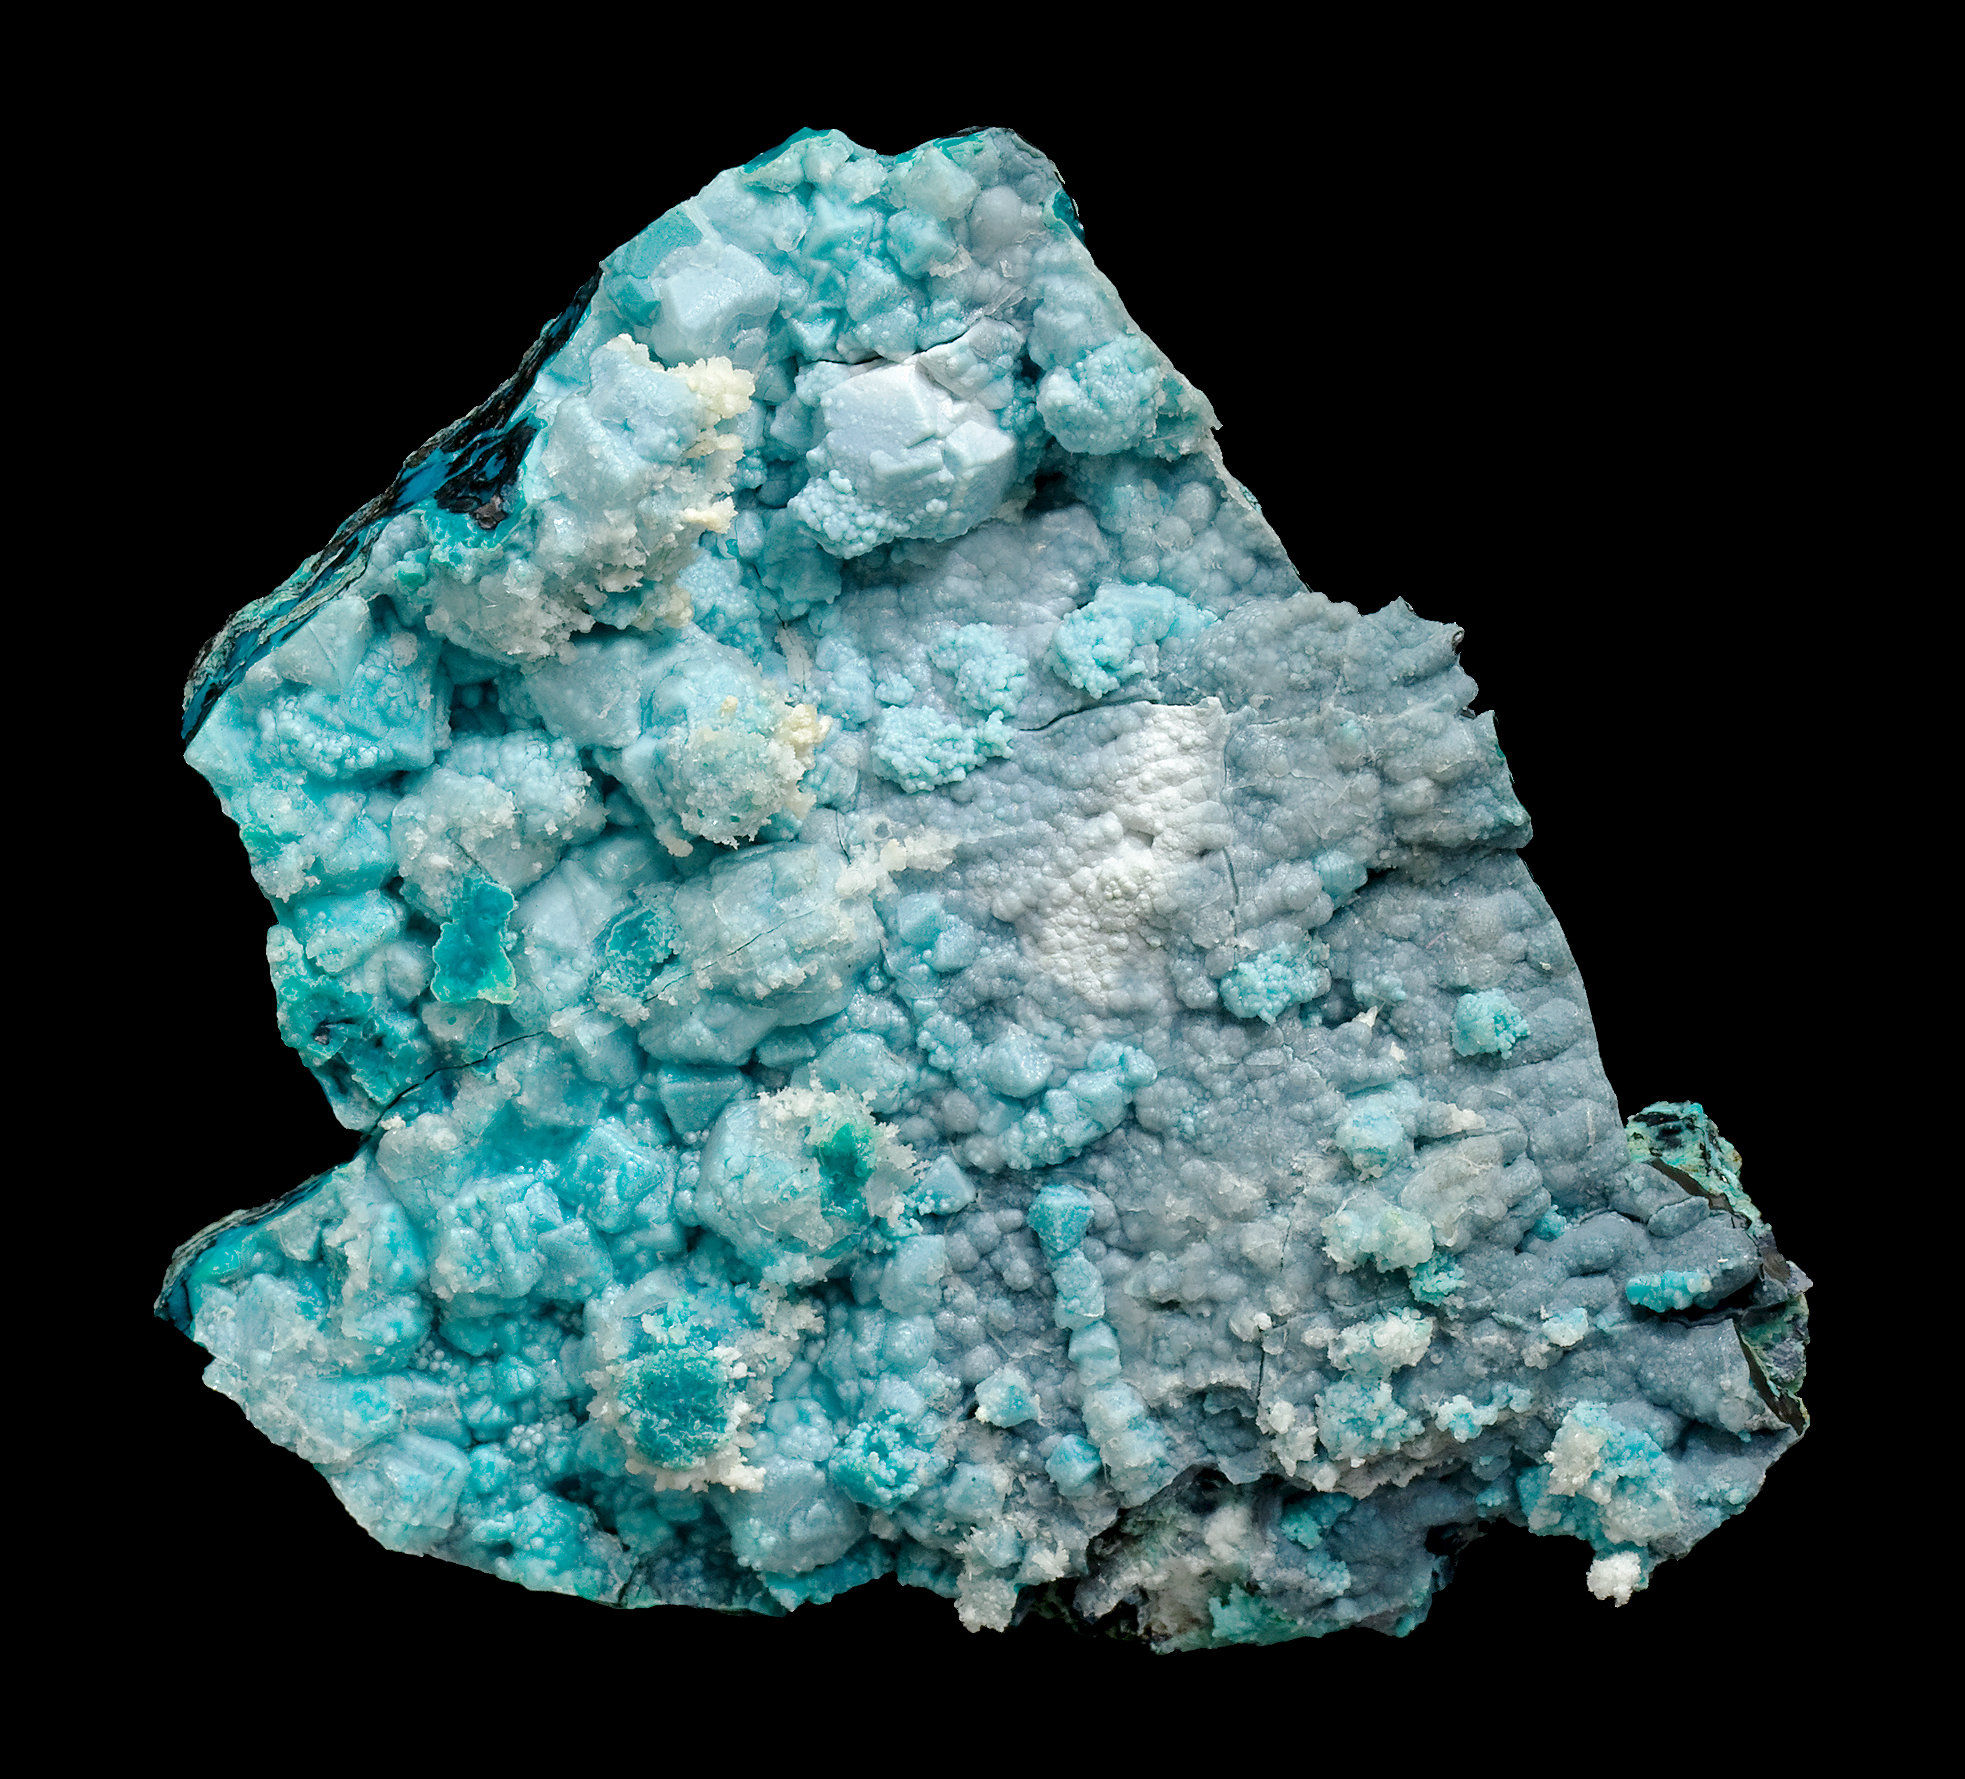 specimens/s_imagesCM/Chrysocolla-8TC36V1f.jpg